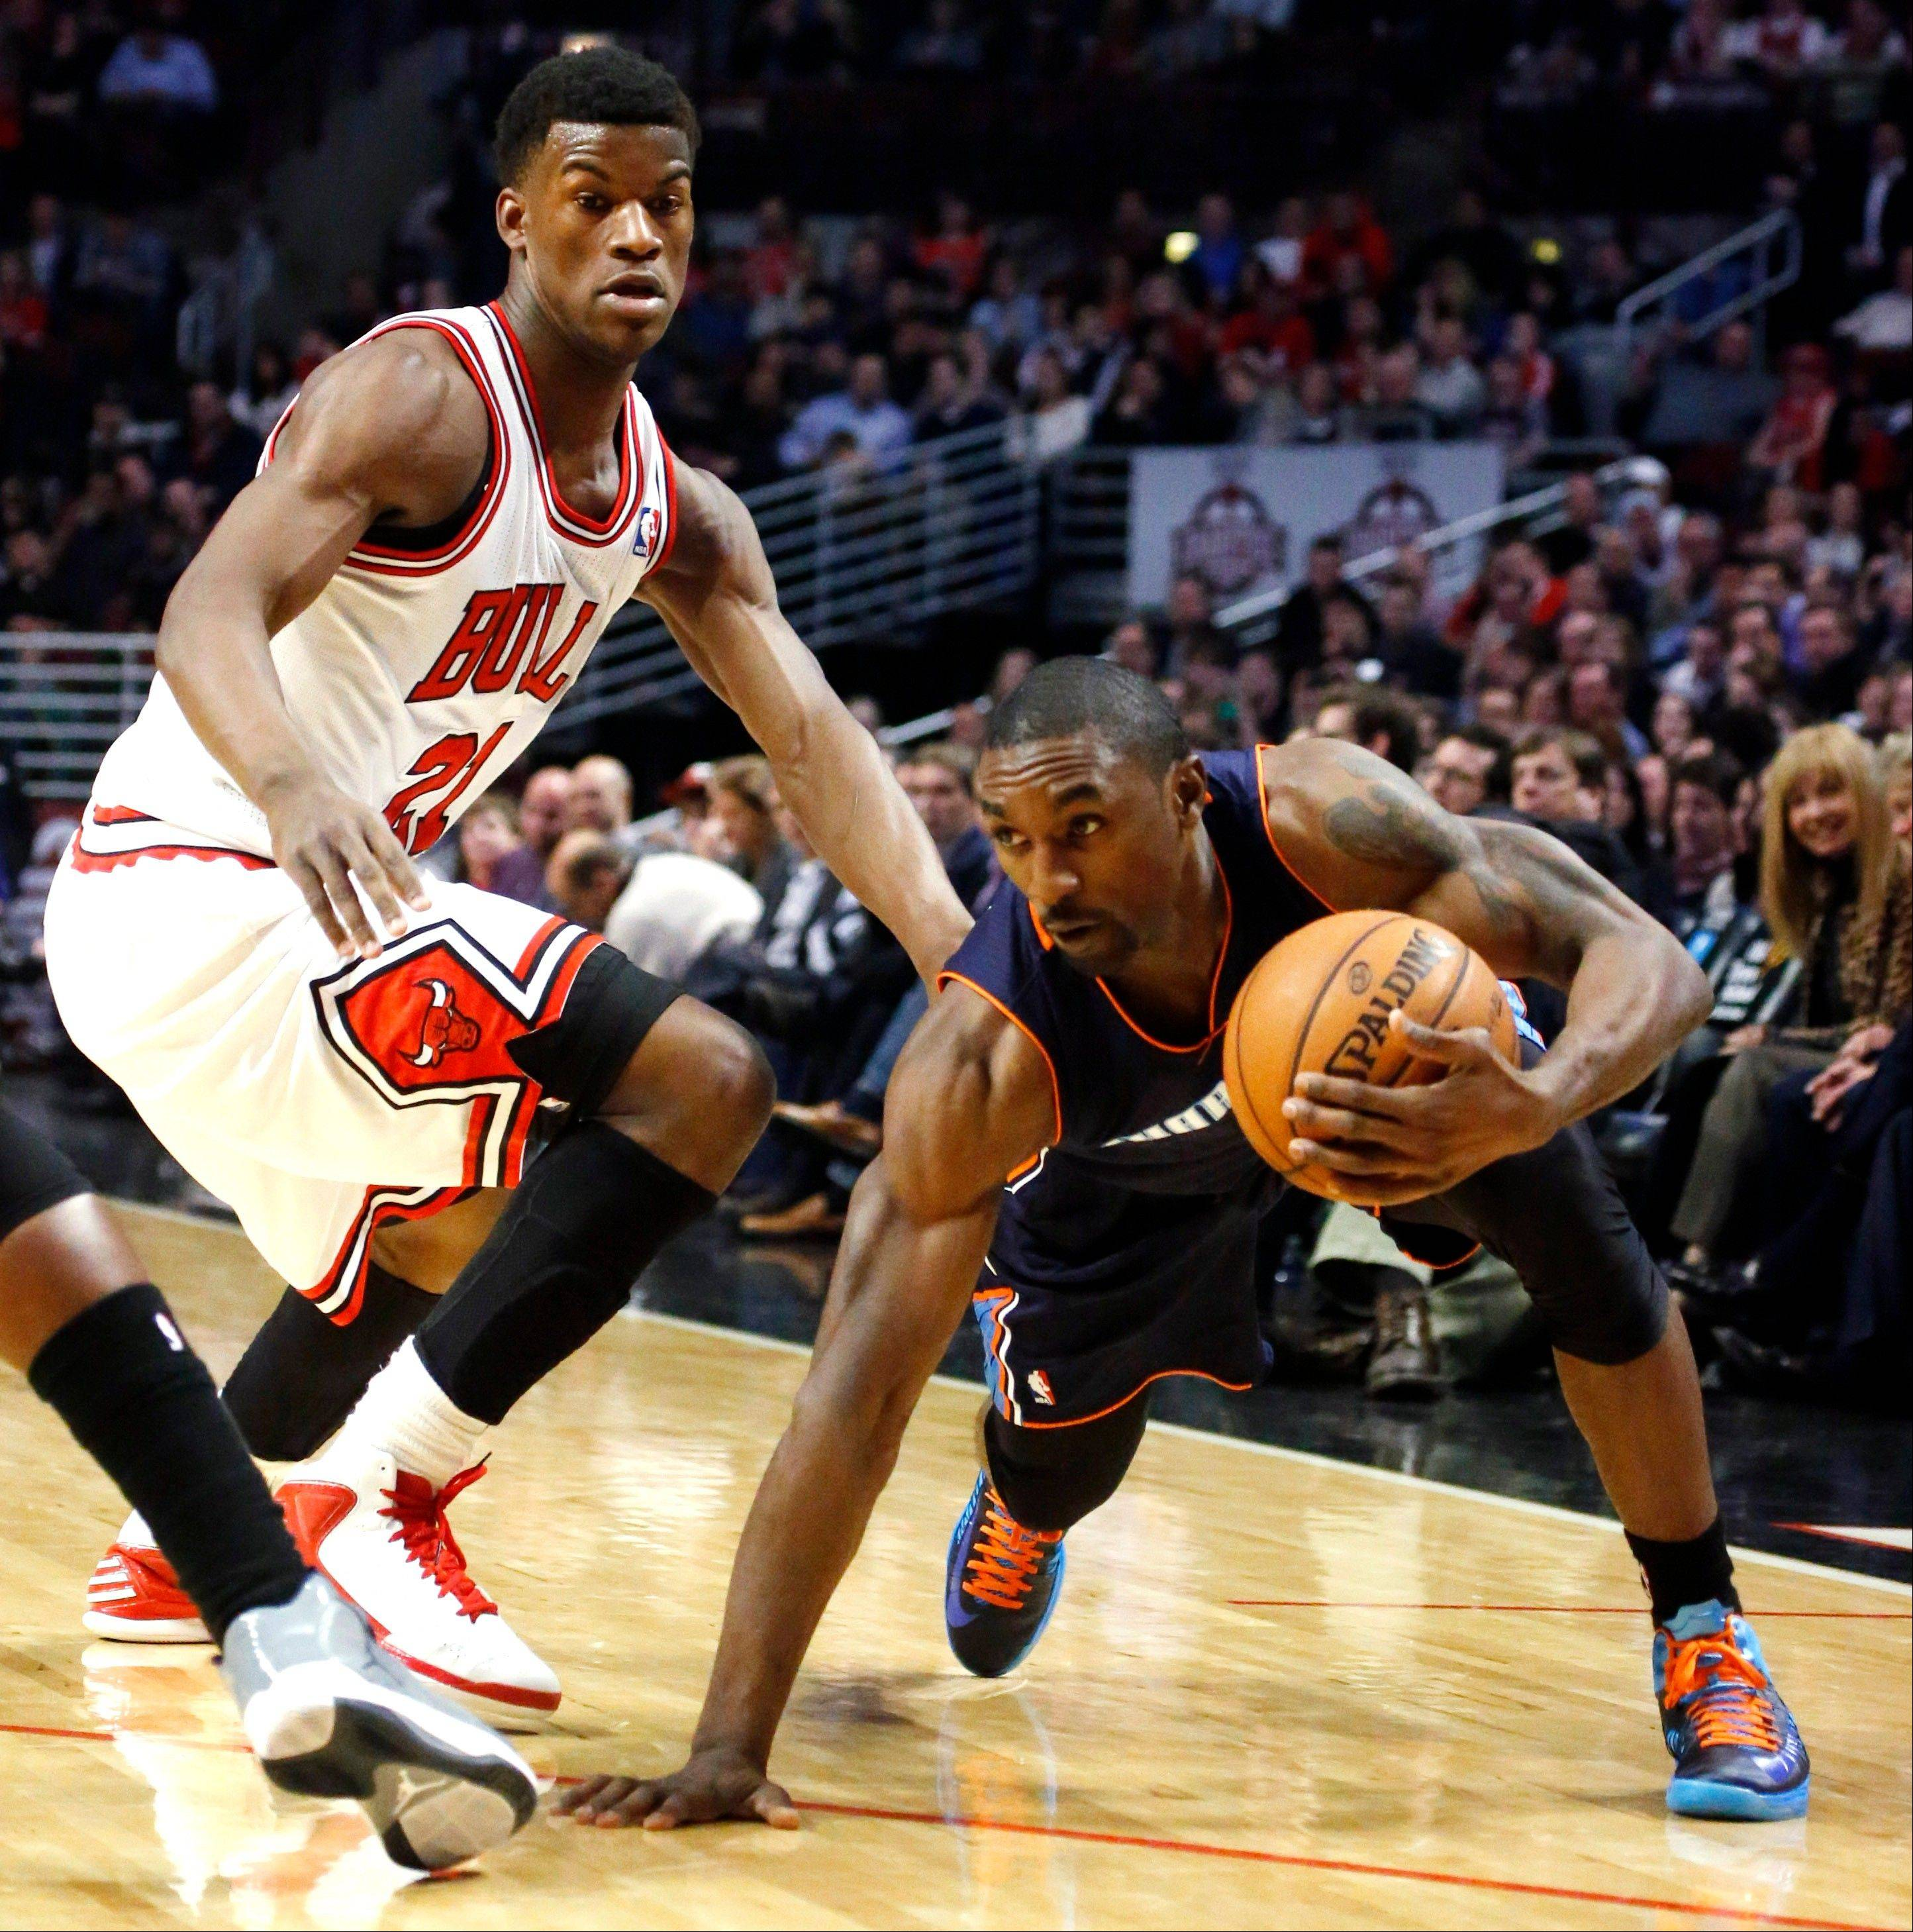 Bobcats guard Ben Gordon, right, trying to get past the Bulls' Jimmy Butler last season, isn't getting much playing time with Charlotte.